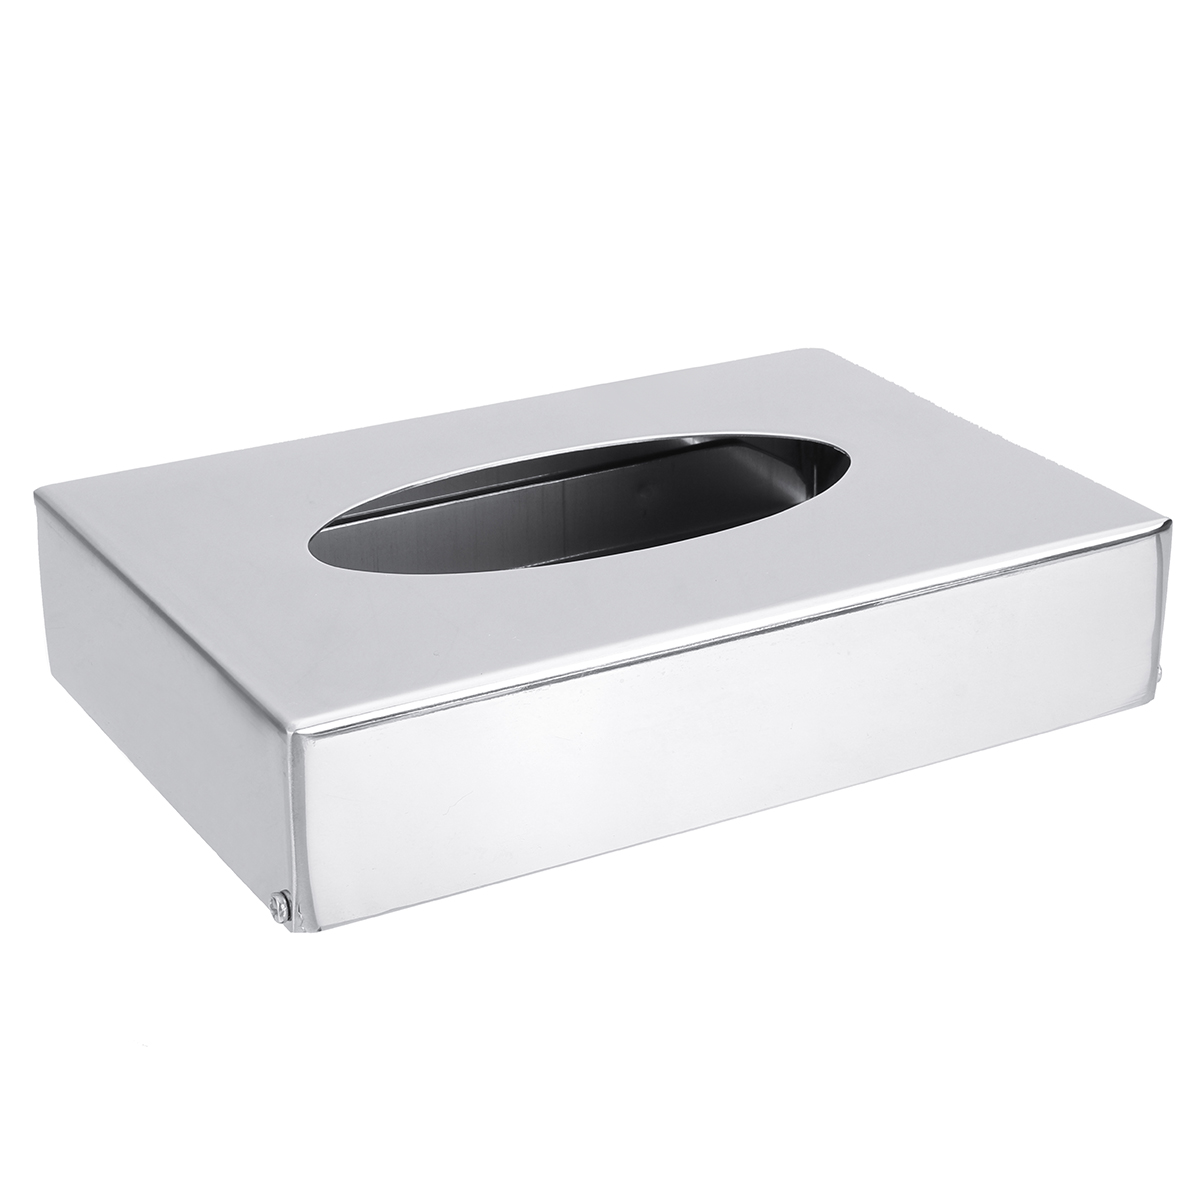 Tissue Container Box Chrome Colour Cover Hotel Bedroom Office Napkin Paper Holder